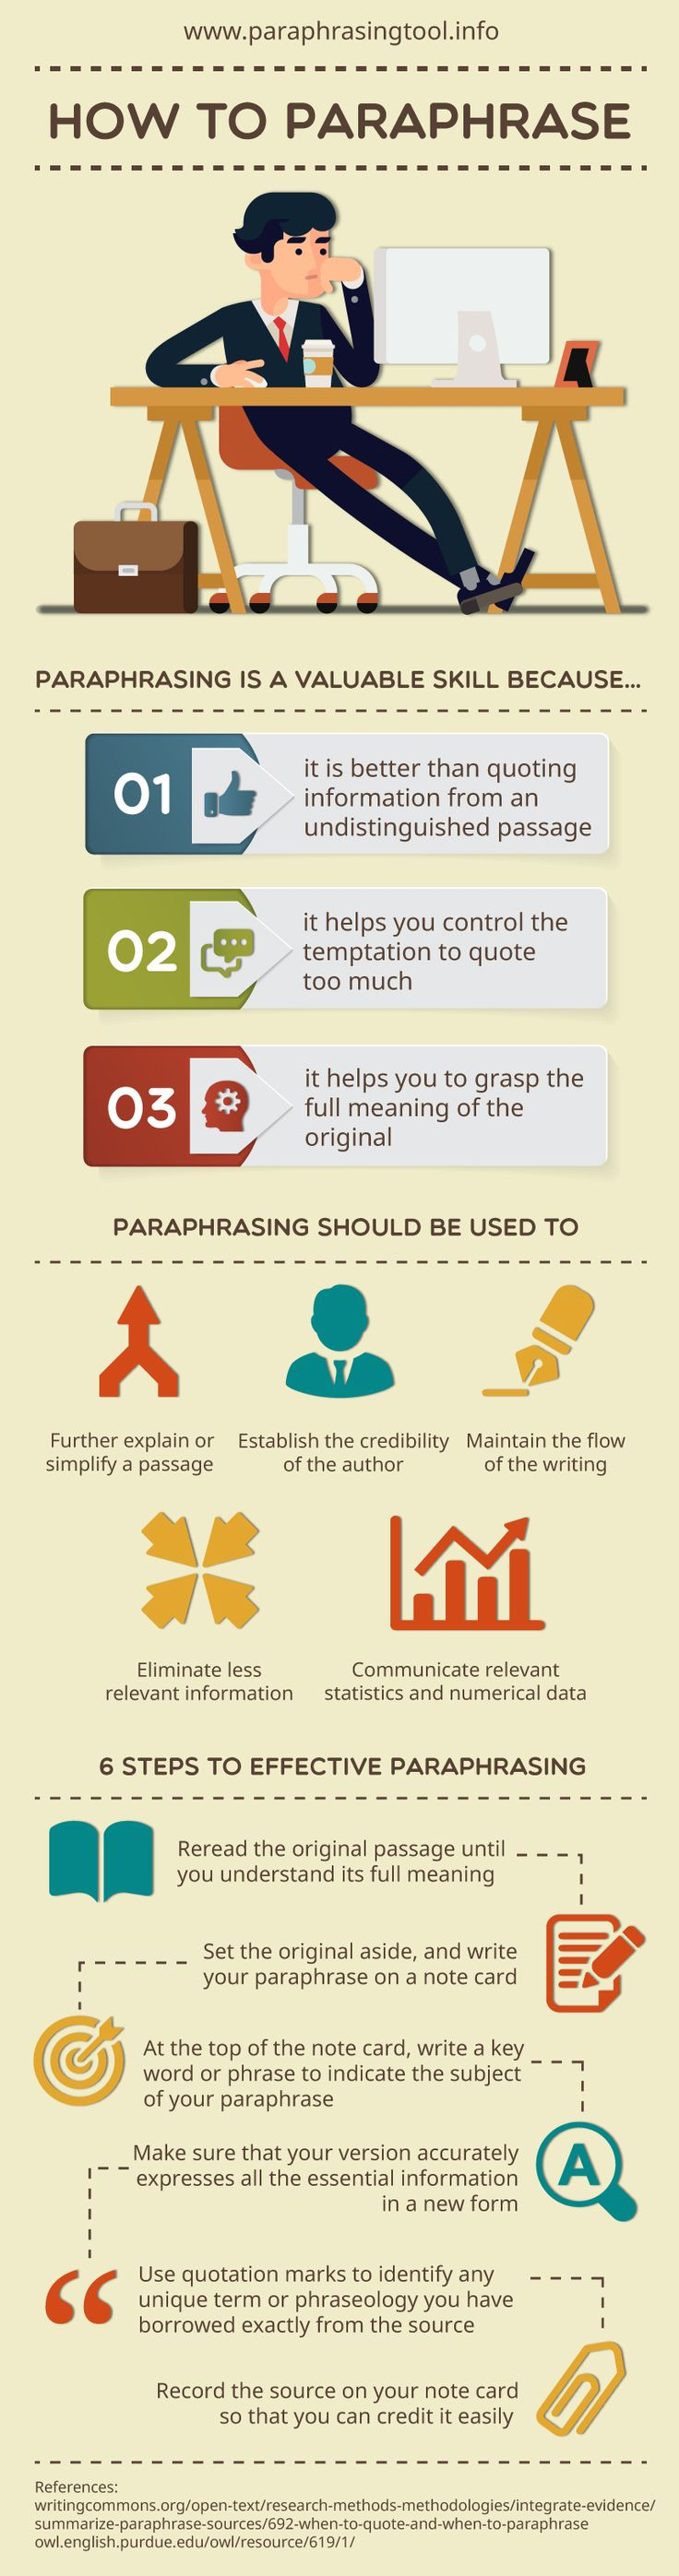 paraphrase essay best images about how to or steps ucollect  best images about how to or steps ucollect infographics on how to paraphrase online